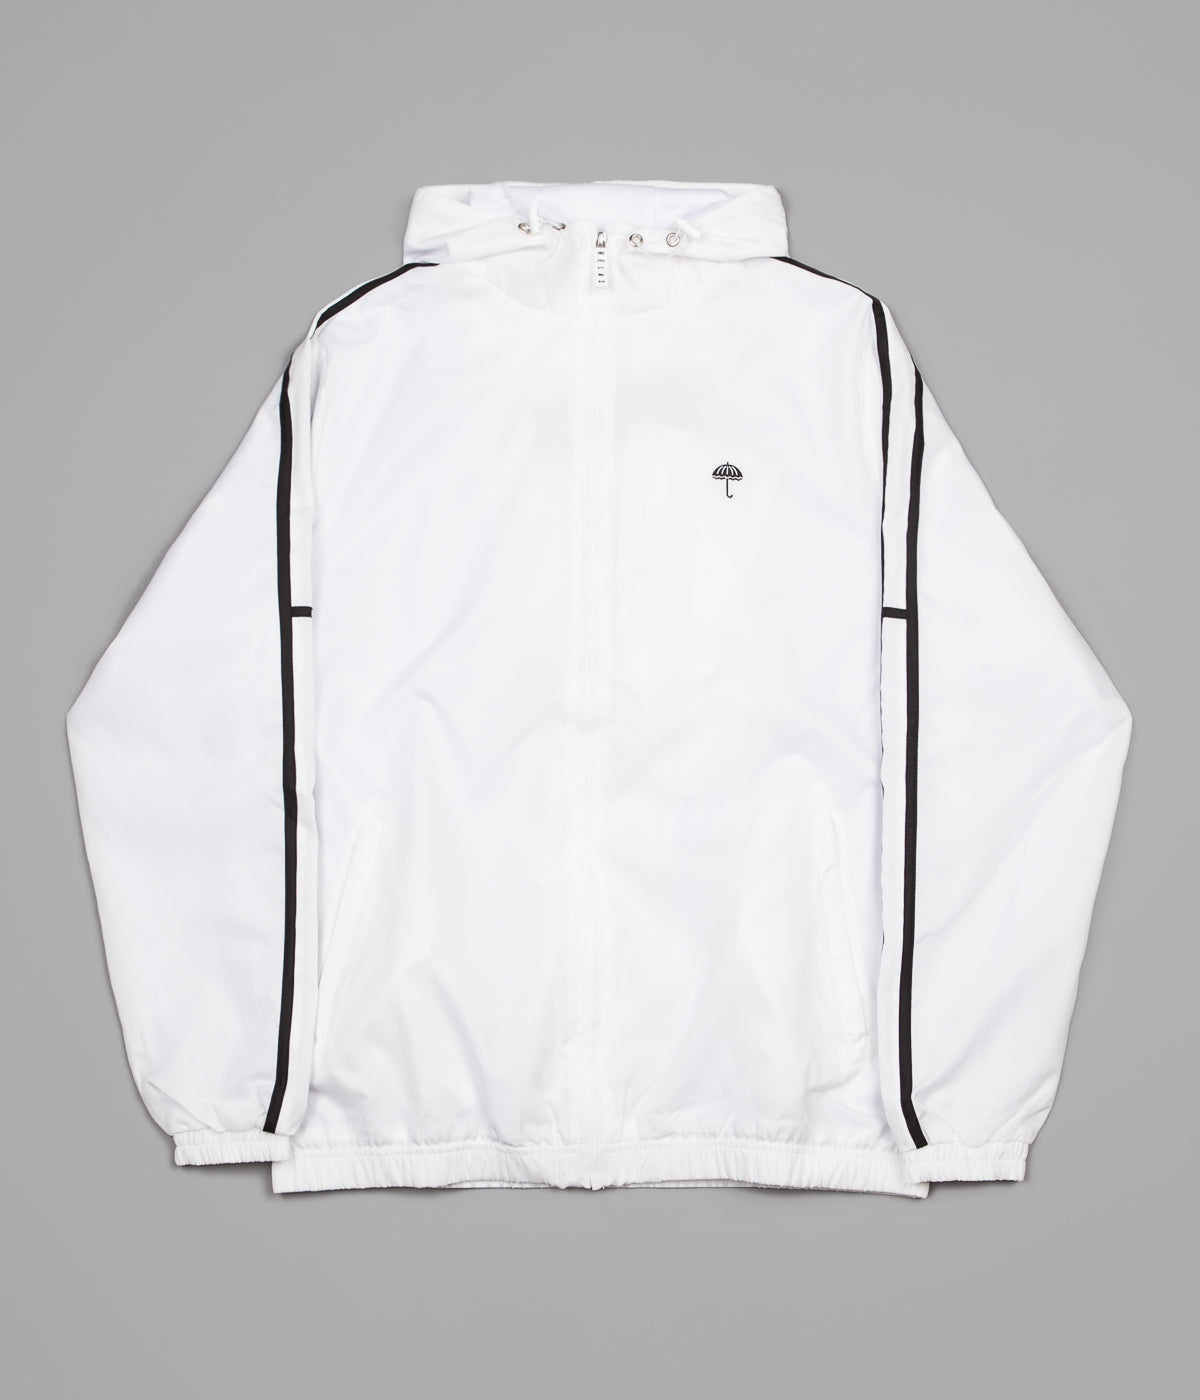 Helas Classic H Stripes Tracksuit Jacket - White